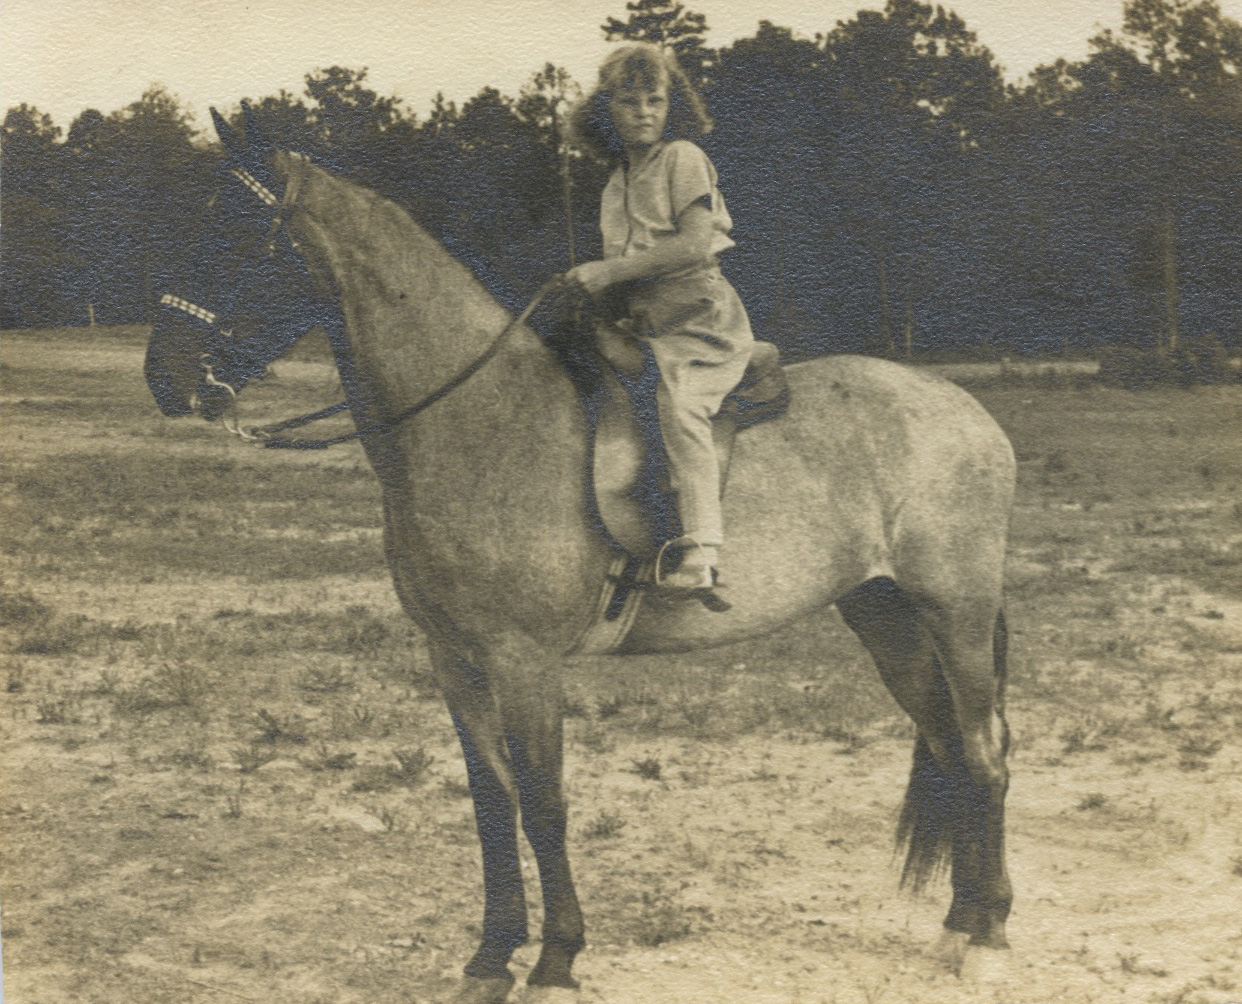 Suzanne on horse